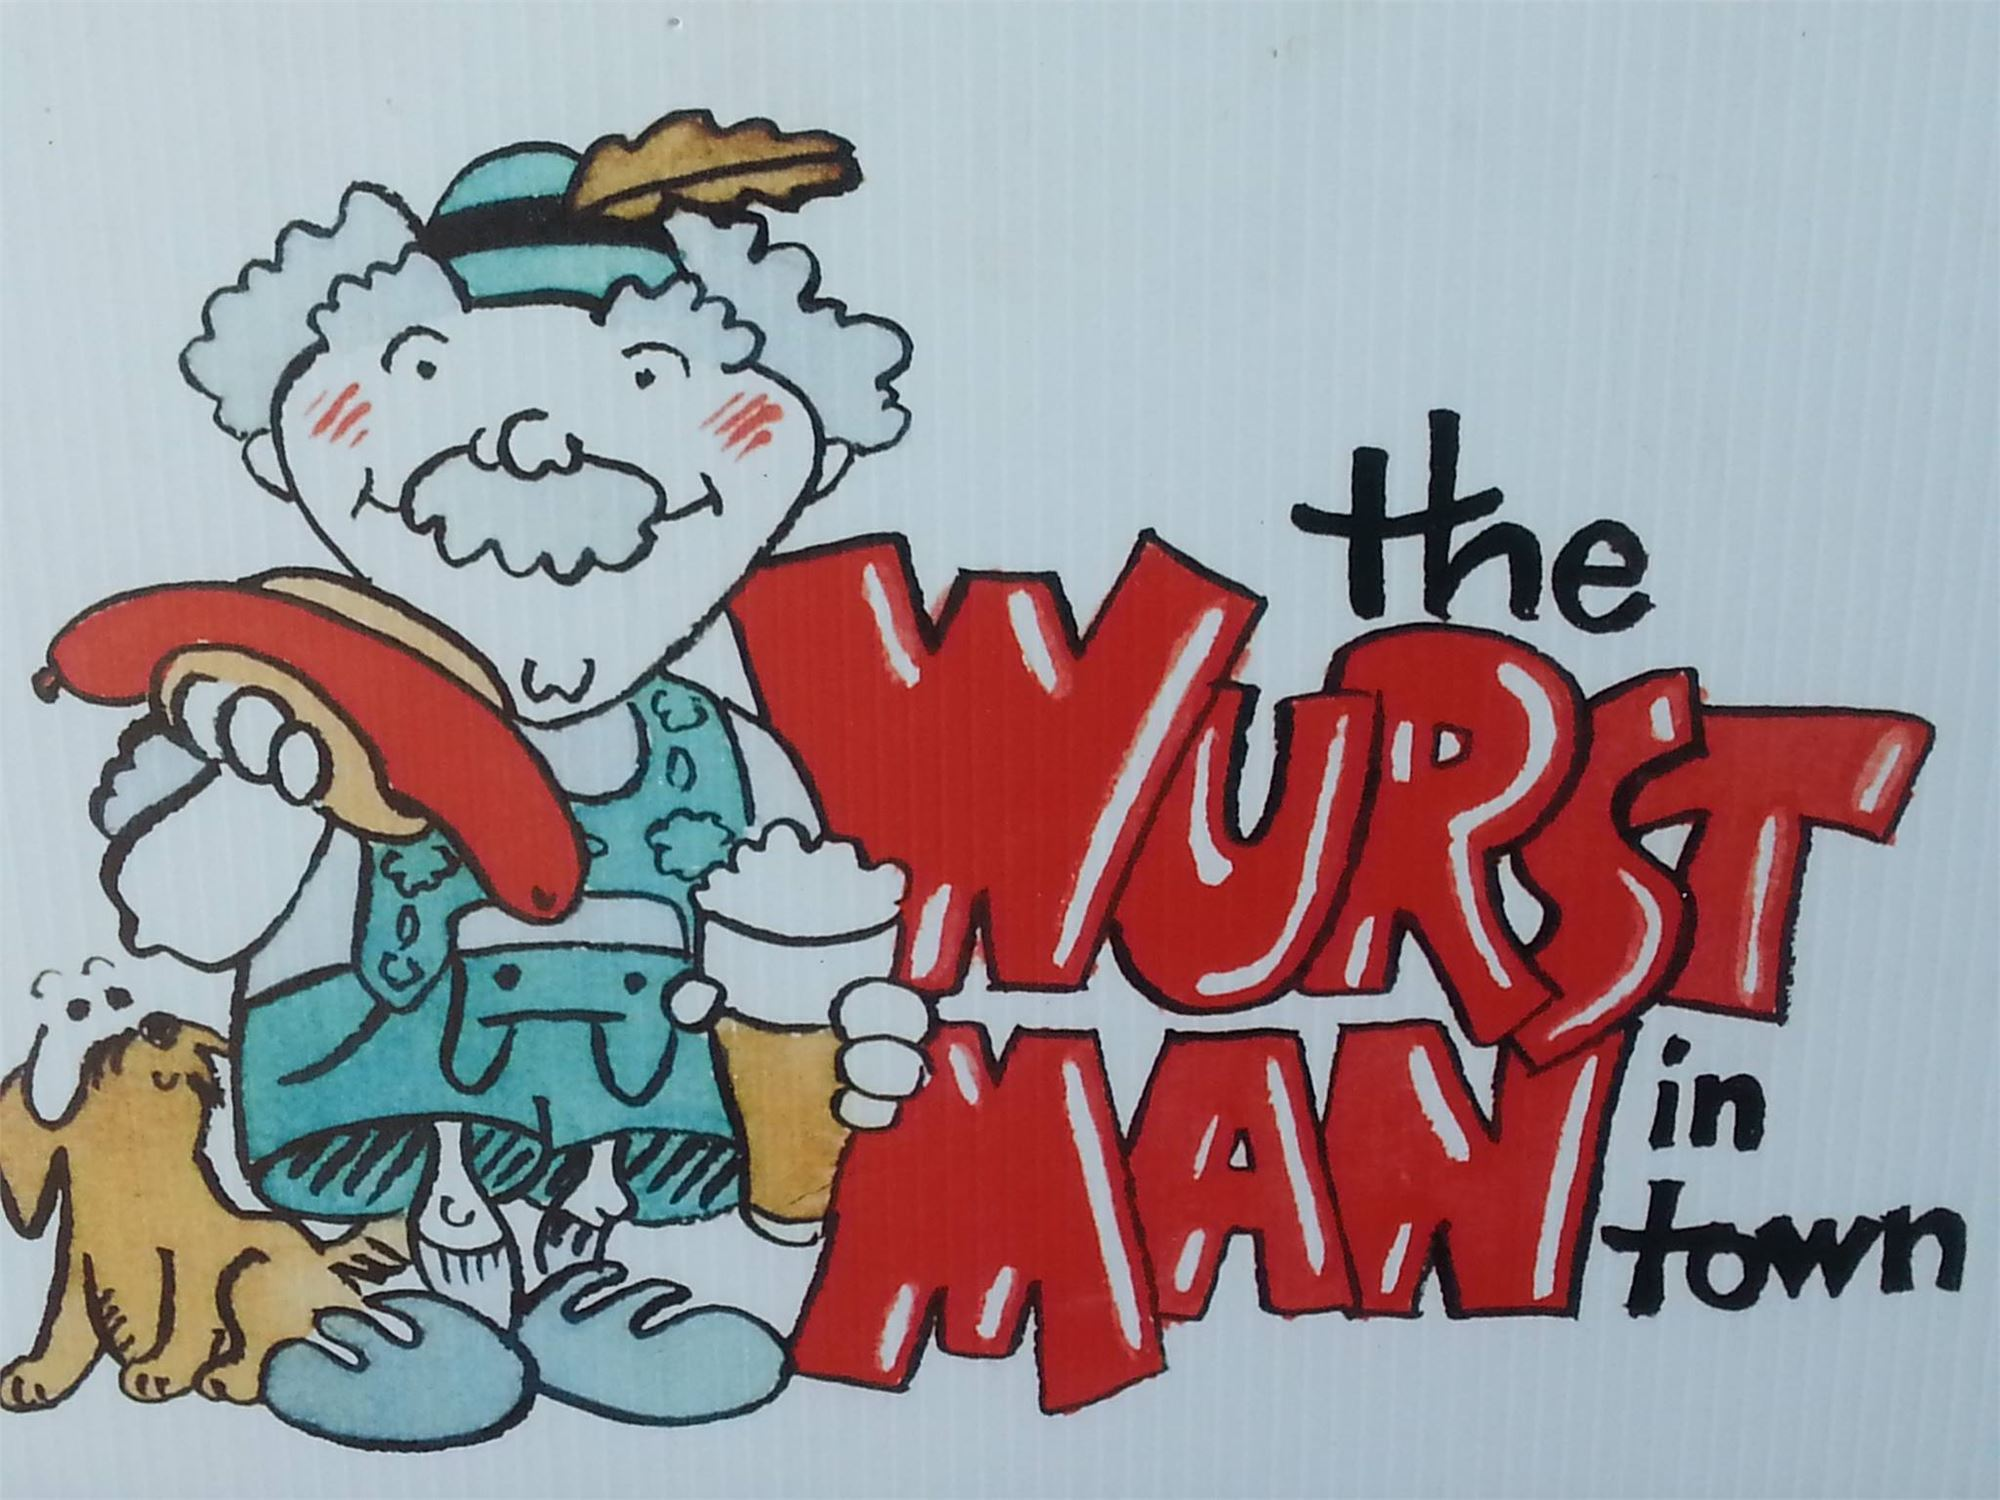 The Wurstman In Town, Inc.